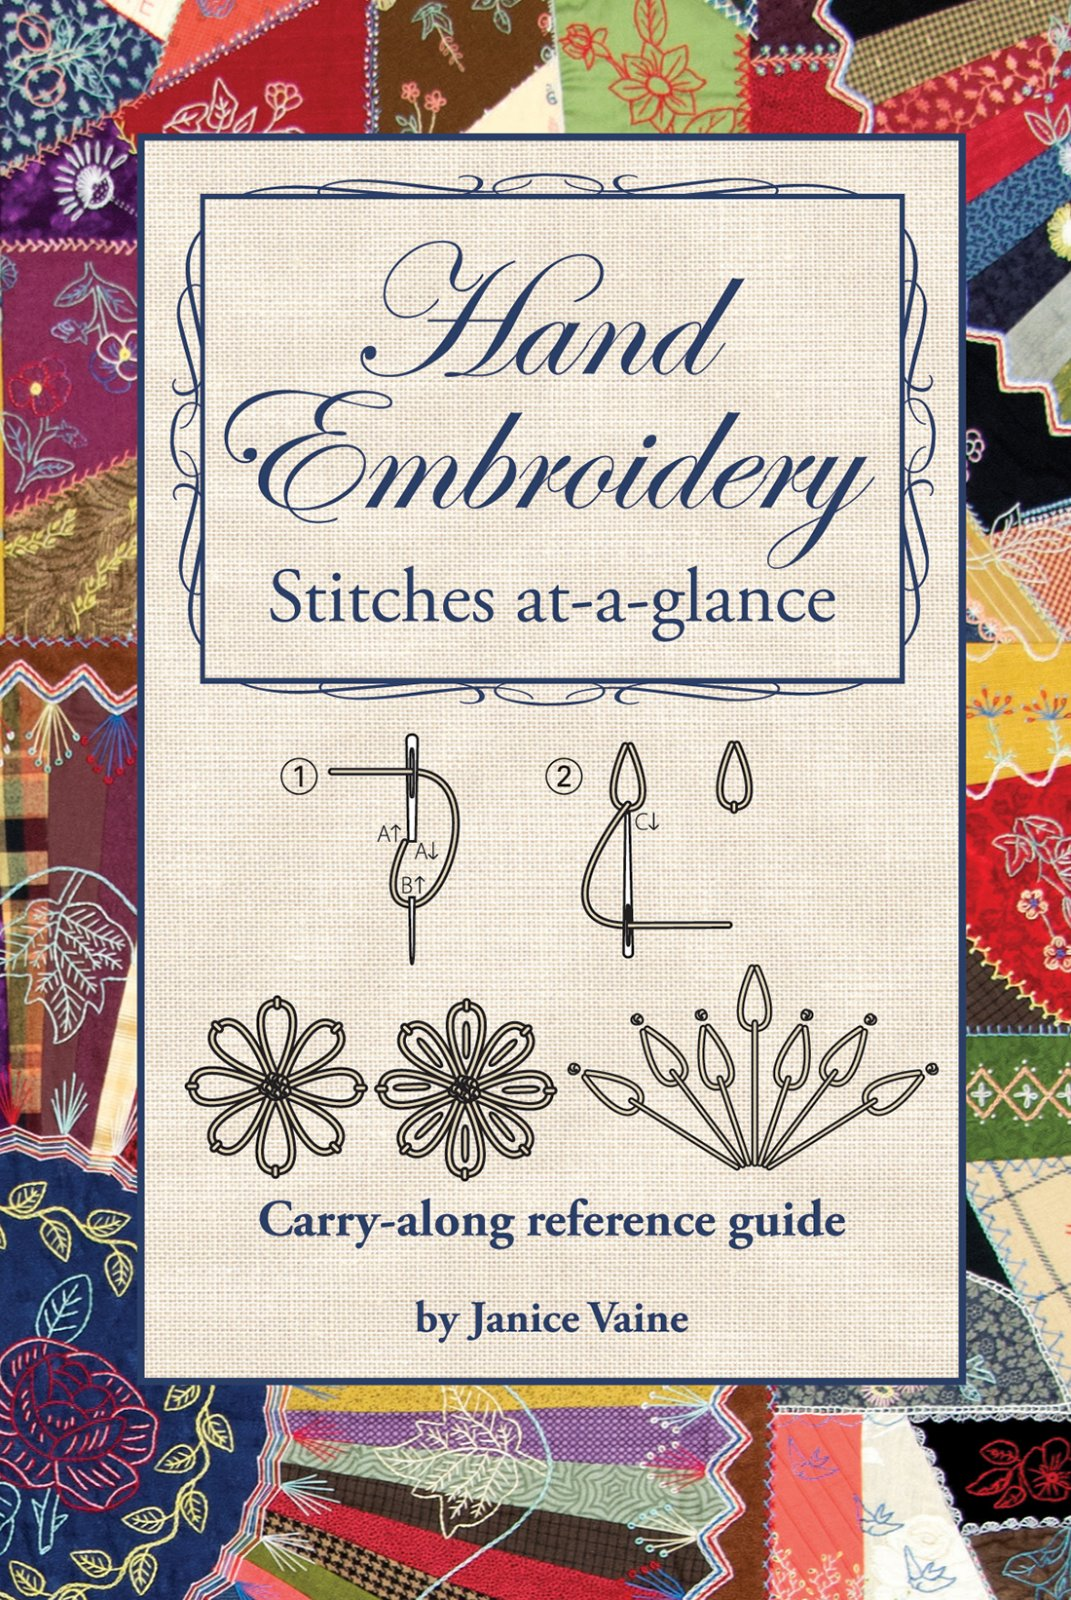 GCC Hand Embroidery: Stitches at a Glance